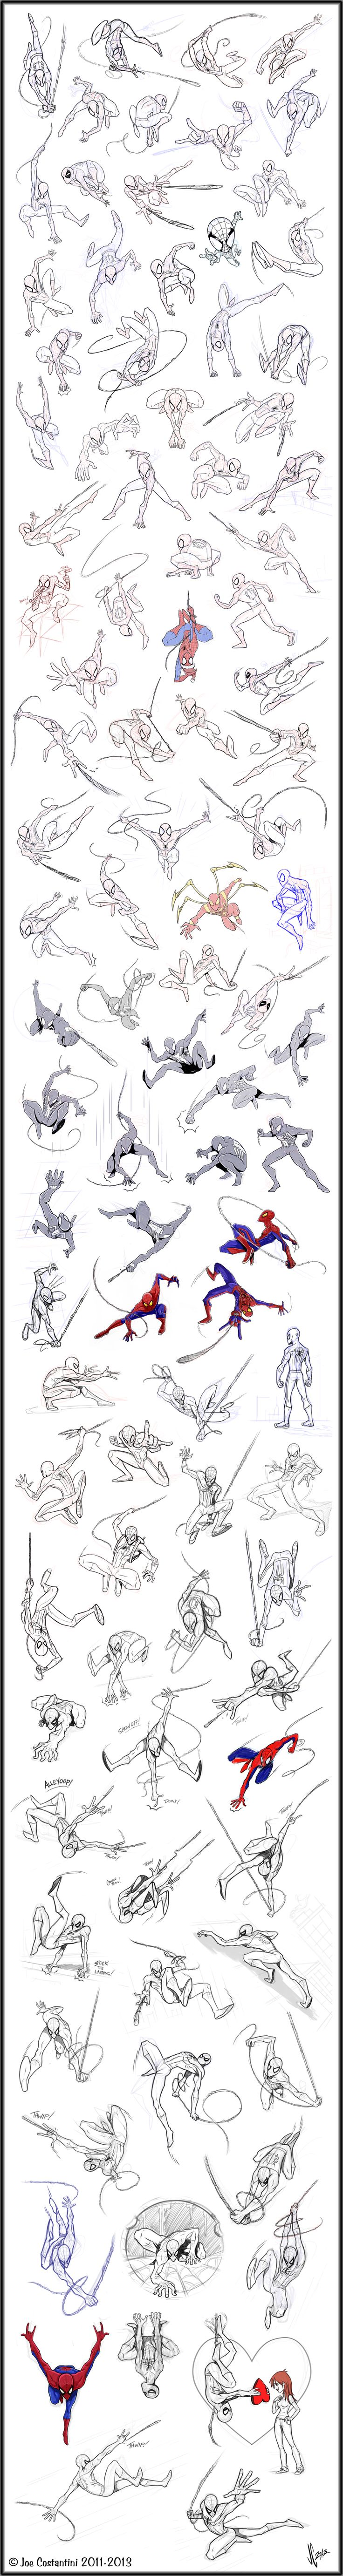 100 Spidey Poses by *2Ajoe on deviantART.